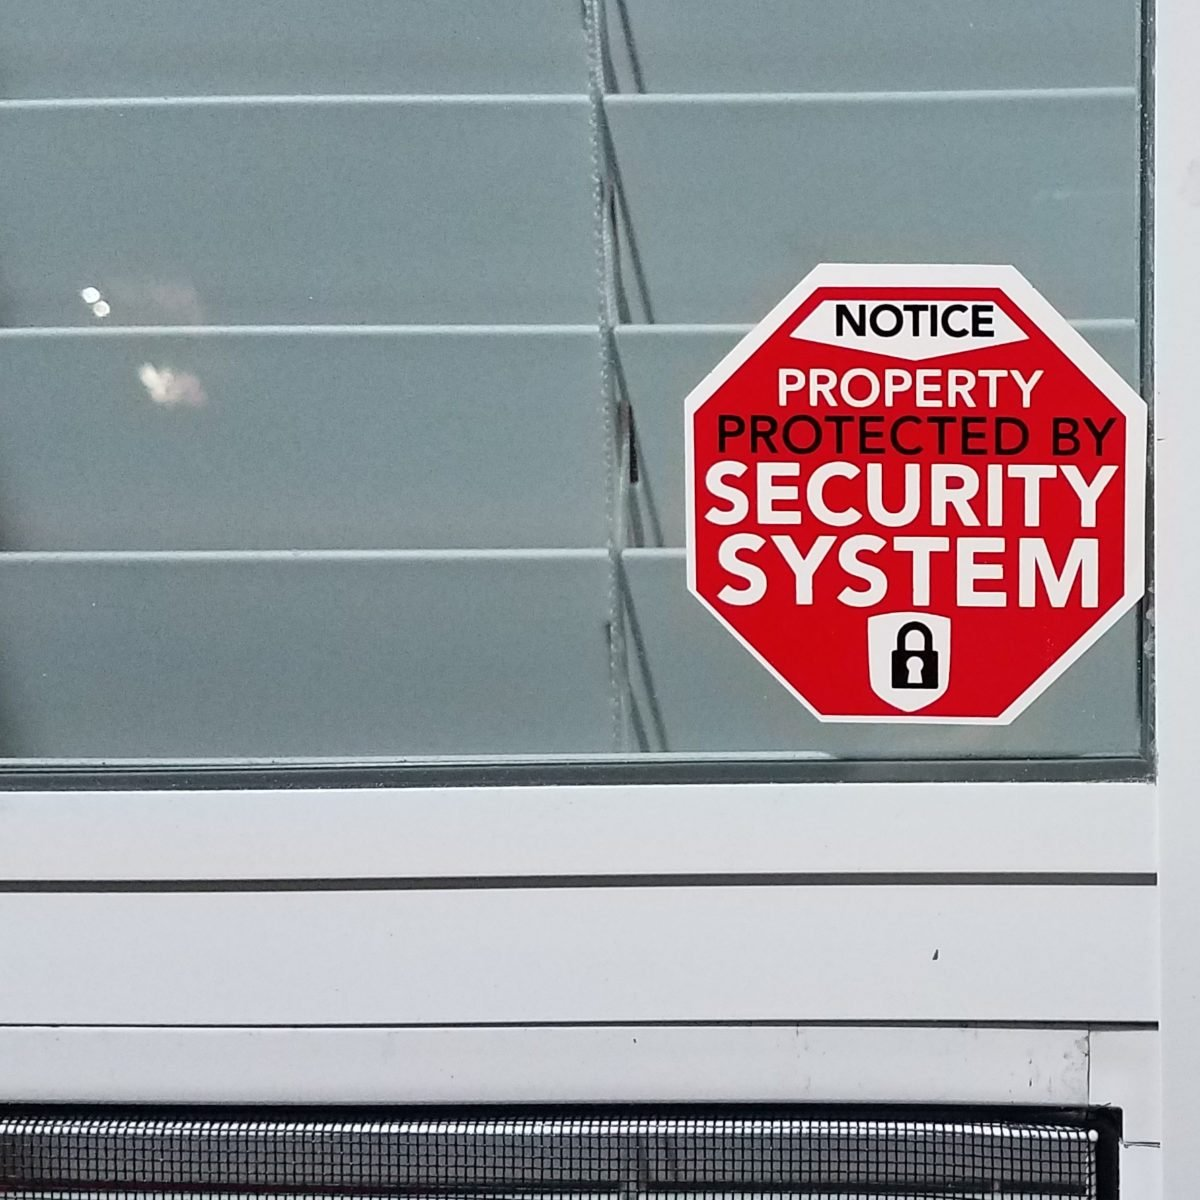 Everyday Things That Pose Security Risks | Reader's Digest